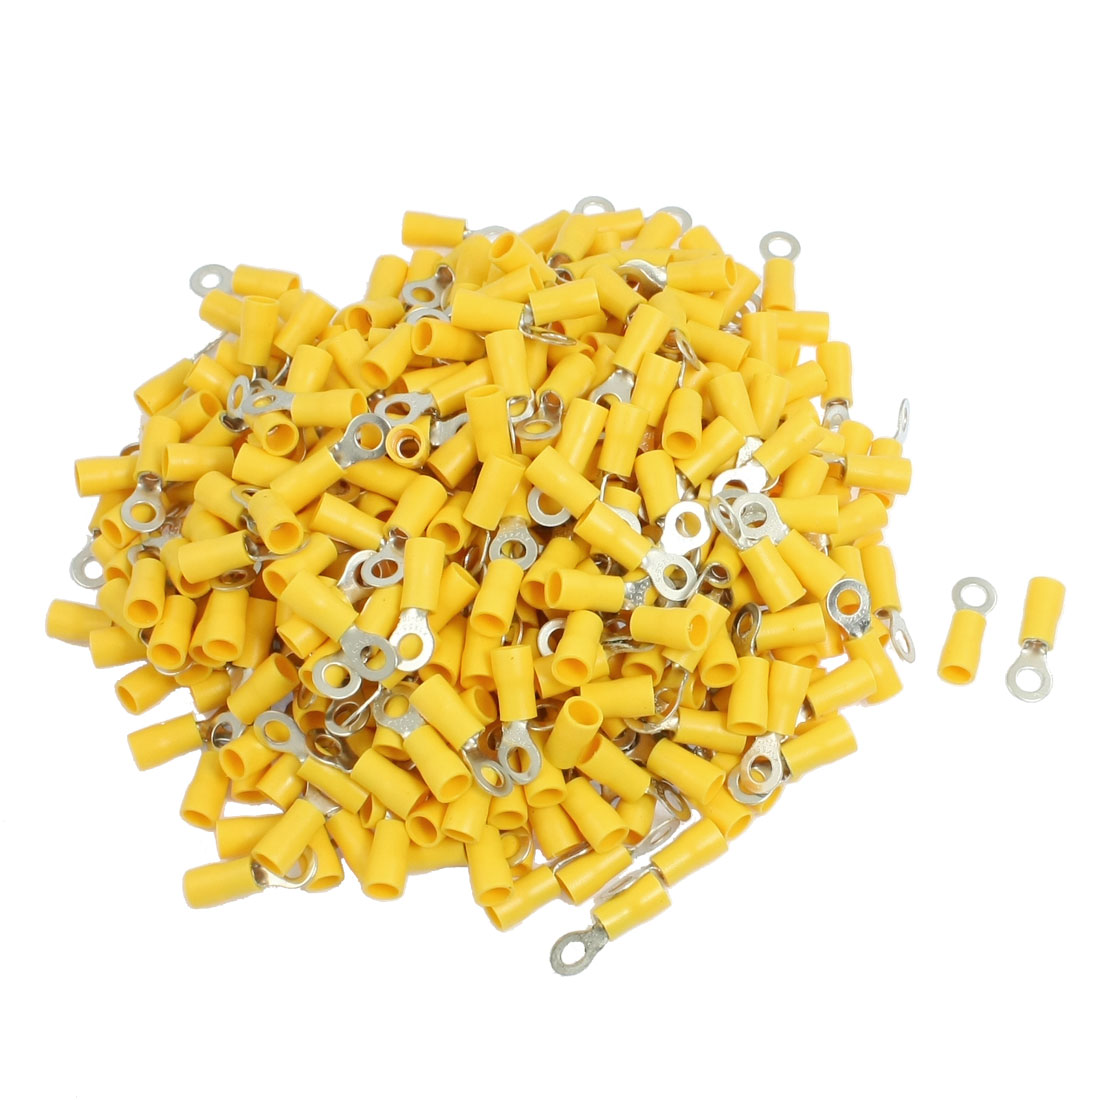 500 Pcs RV5.5-5 AWG 12-10 Yellow Sleeve Pre Insulated Ring Terminals Connector